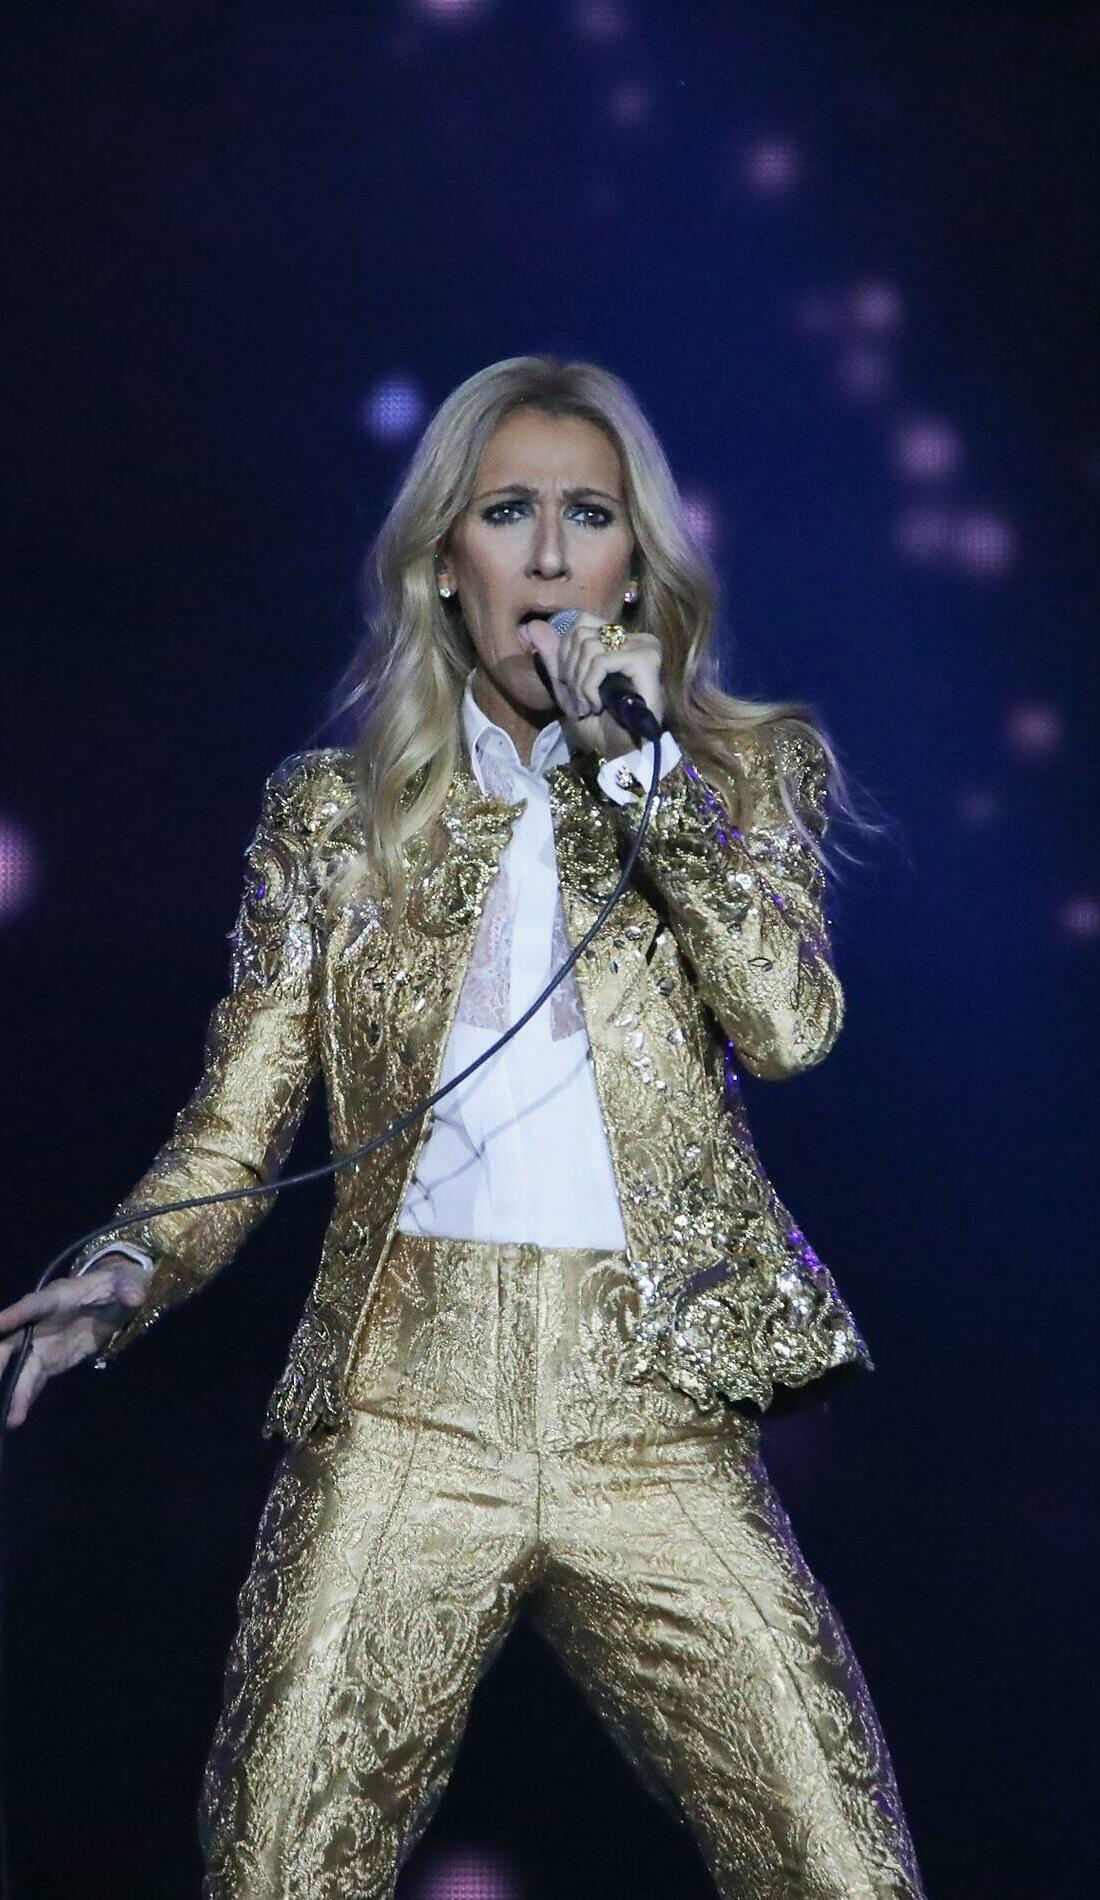 A Celine Dion live event